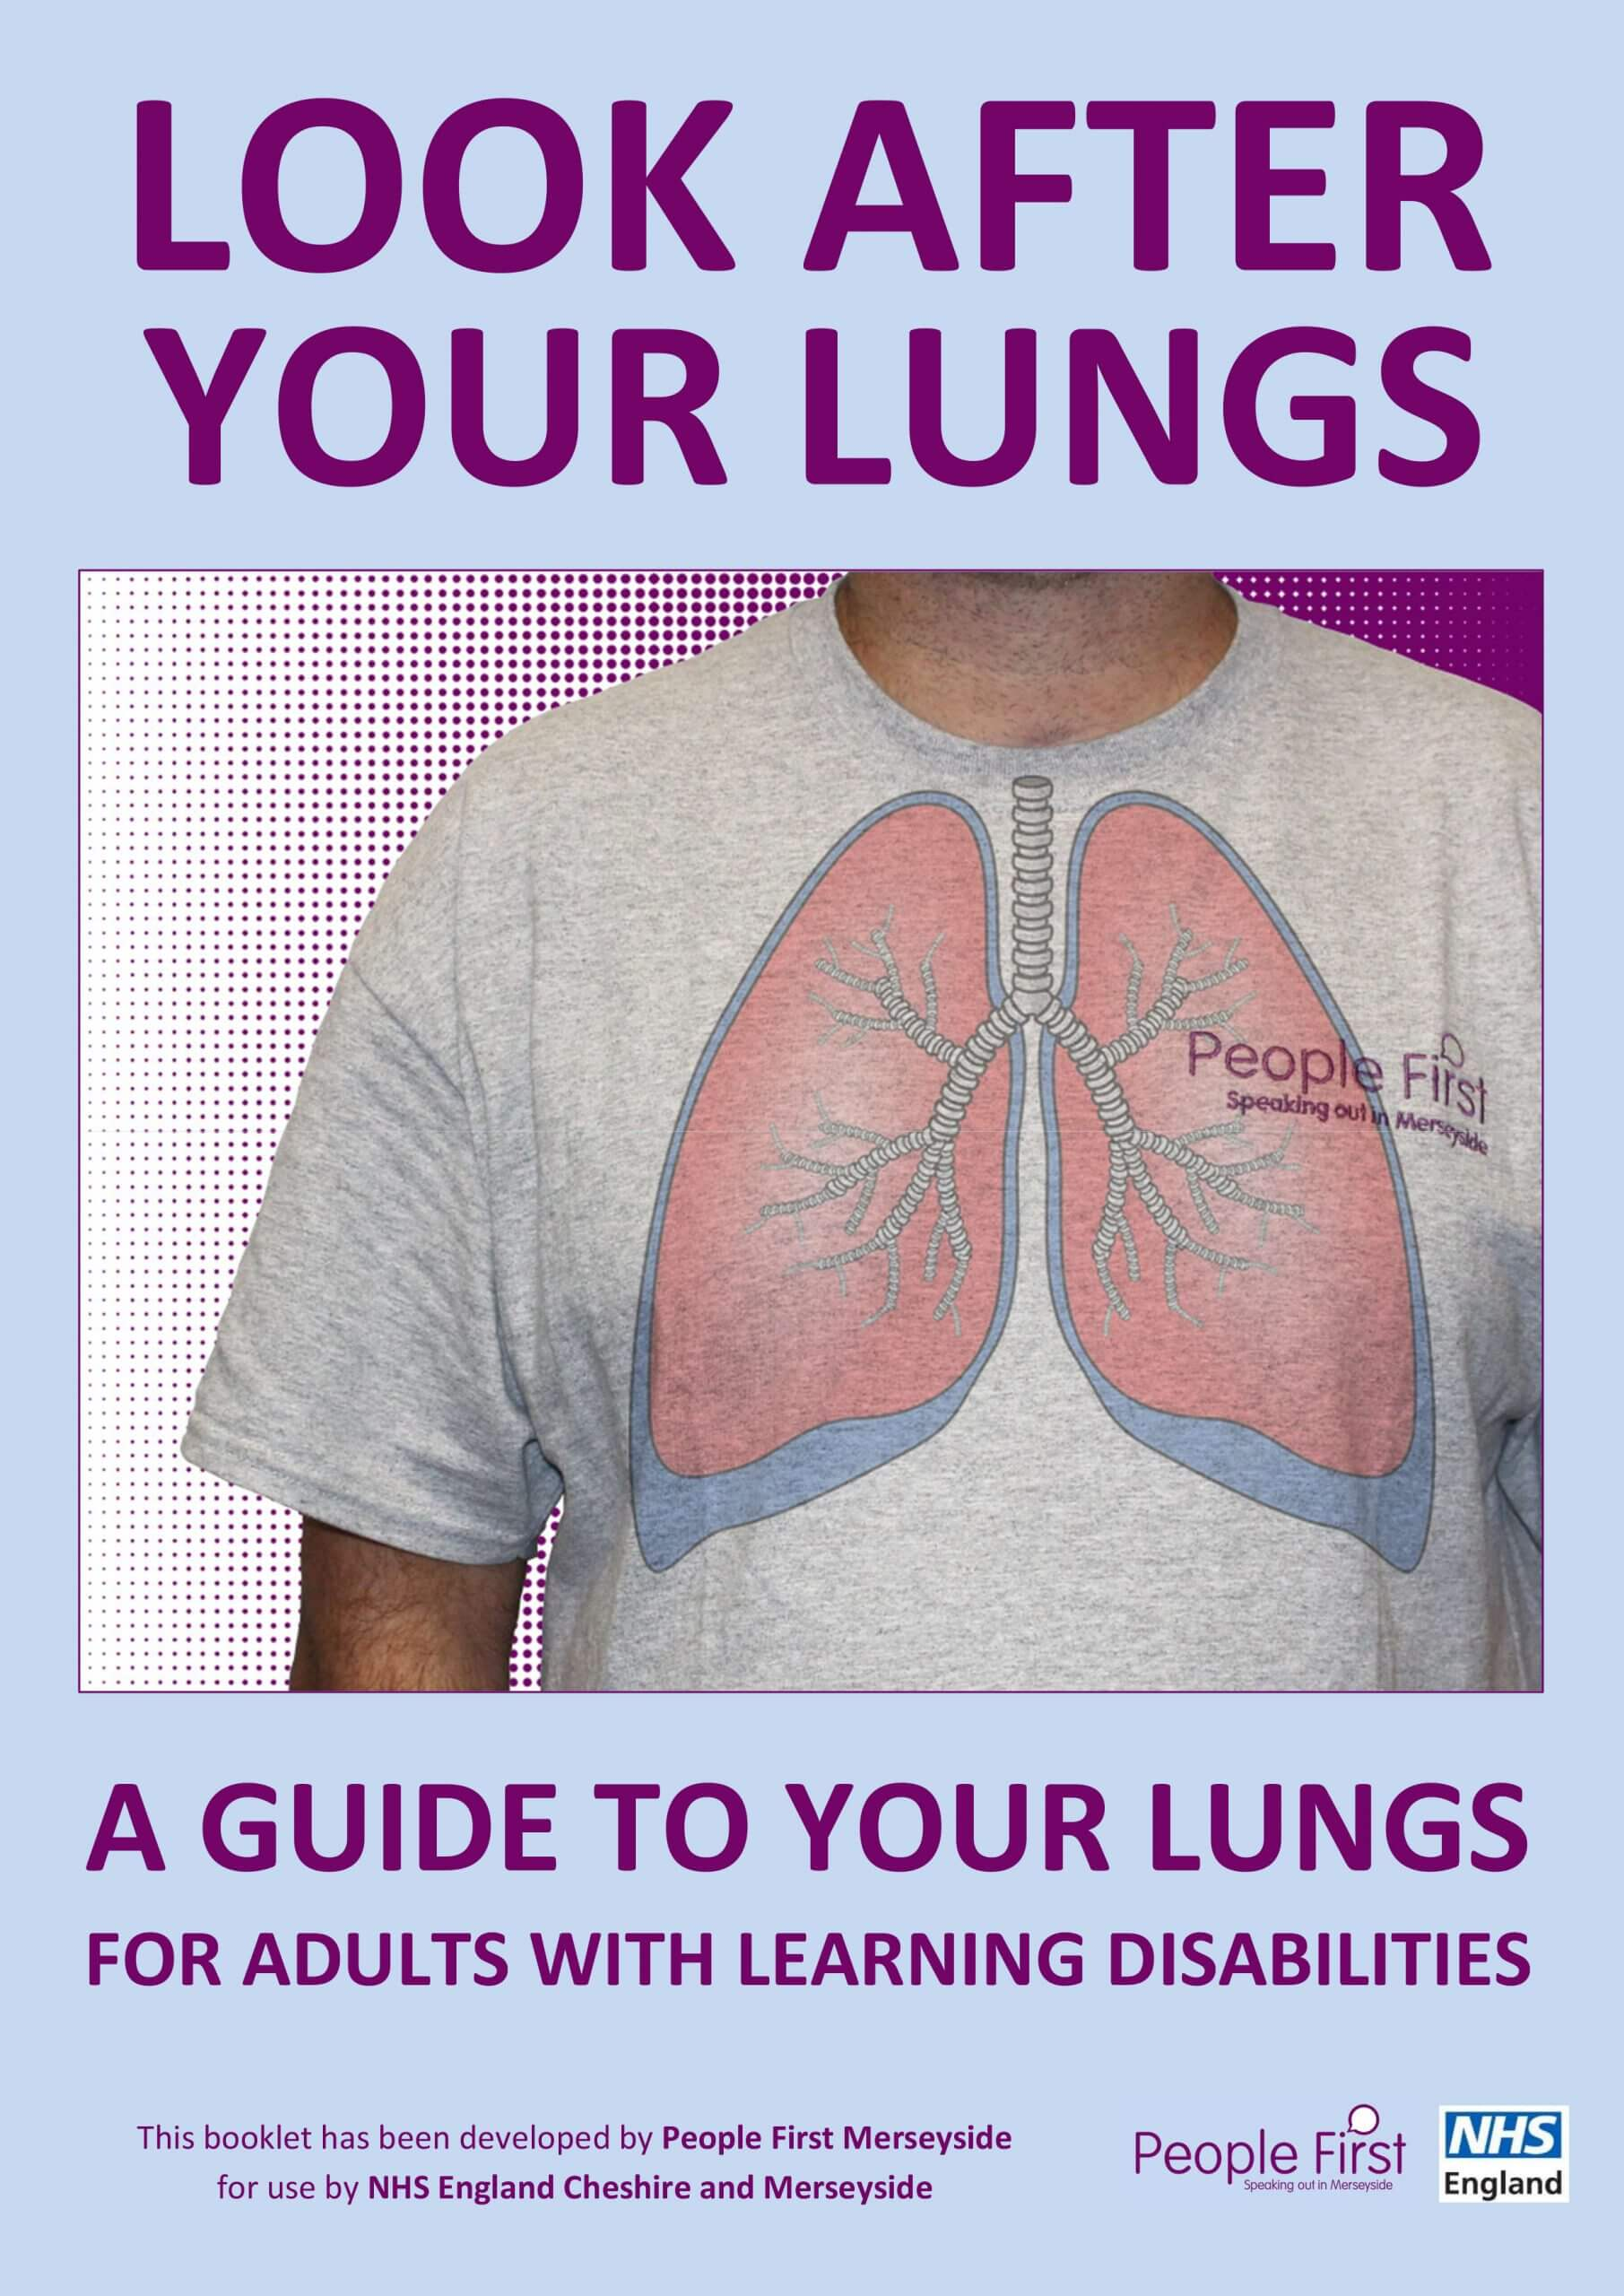 Look after your lungs